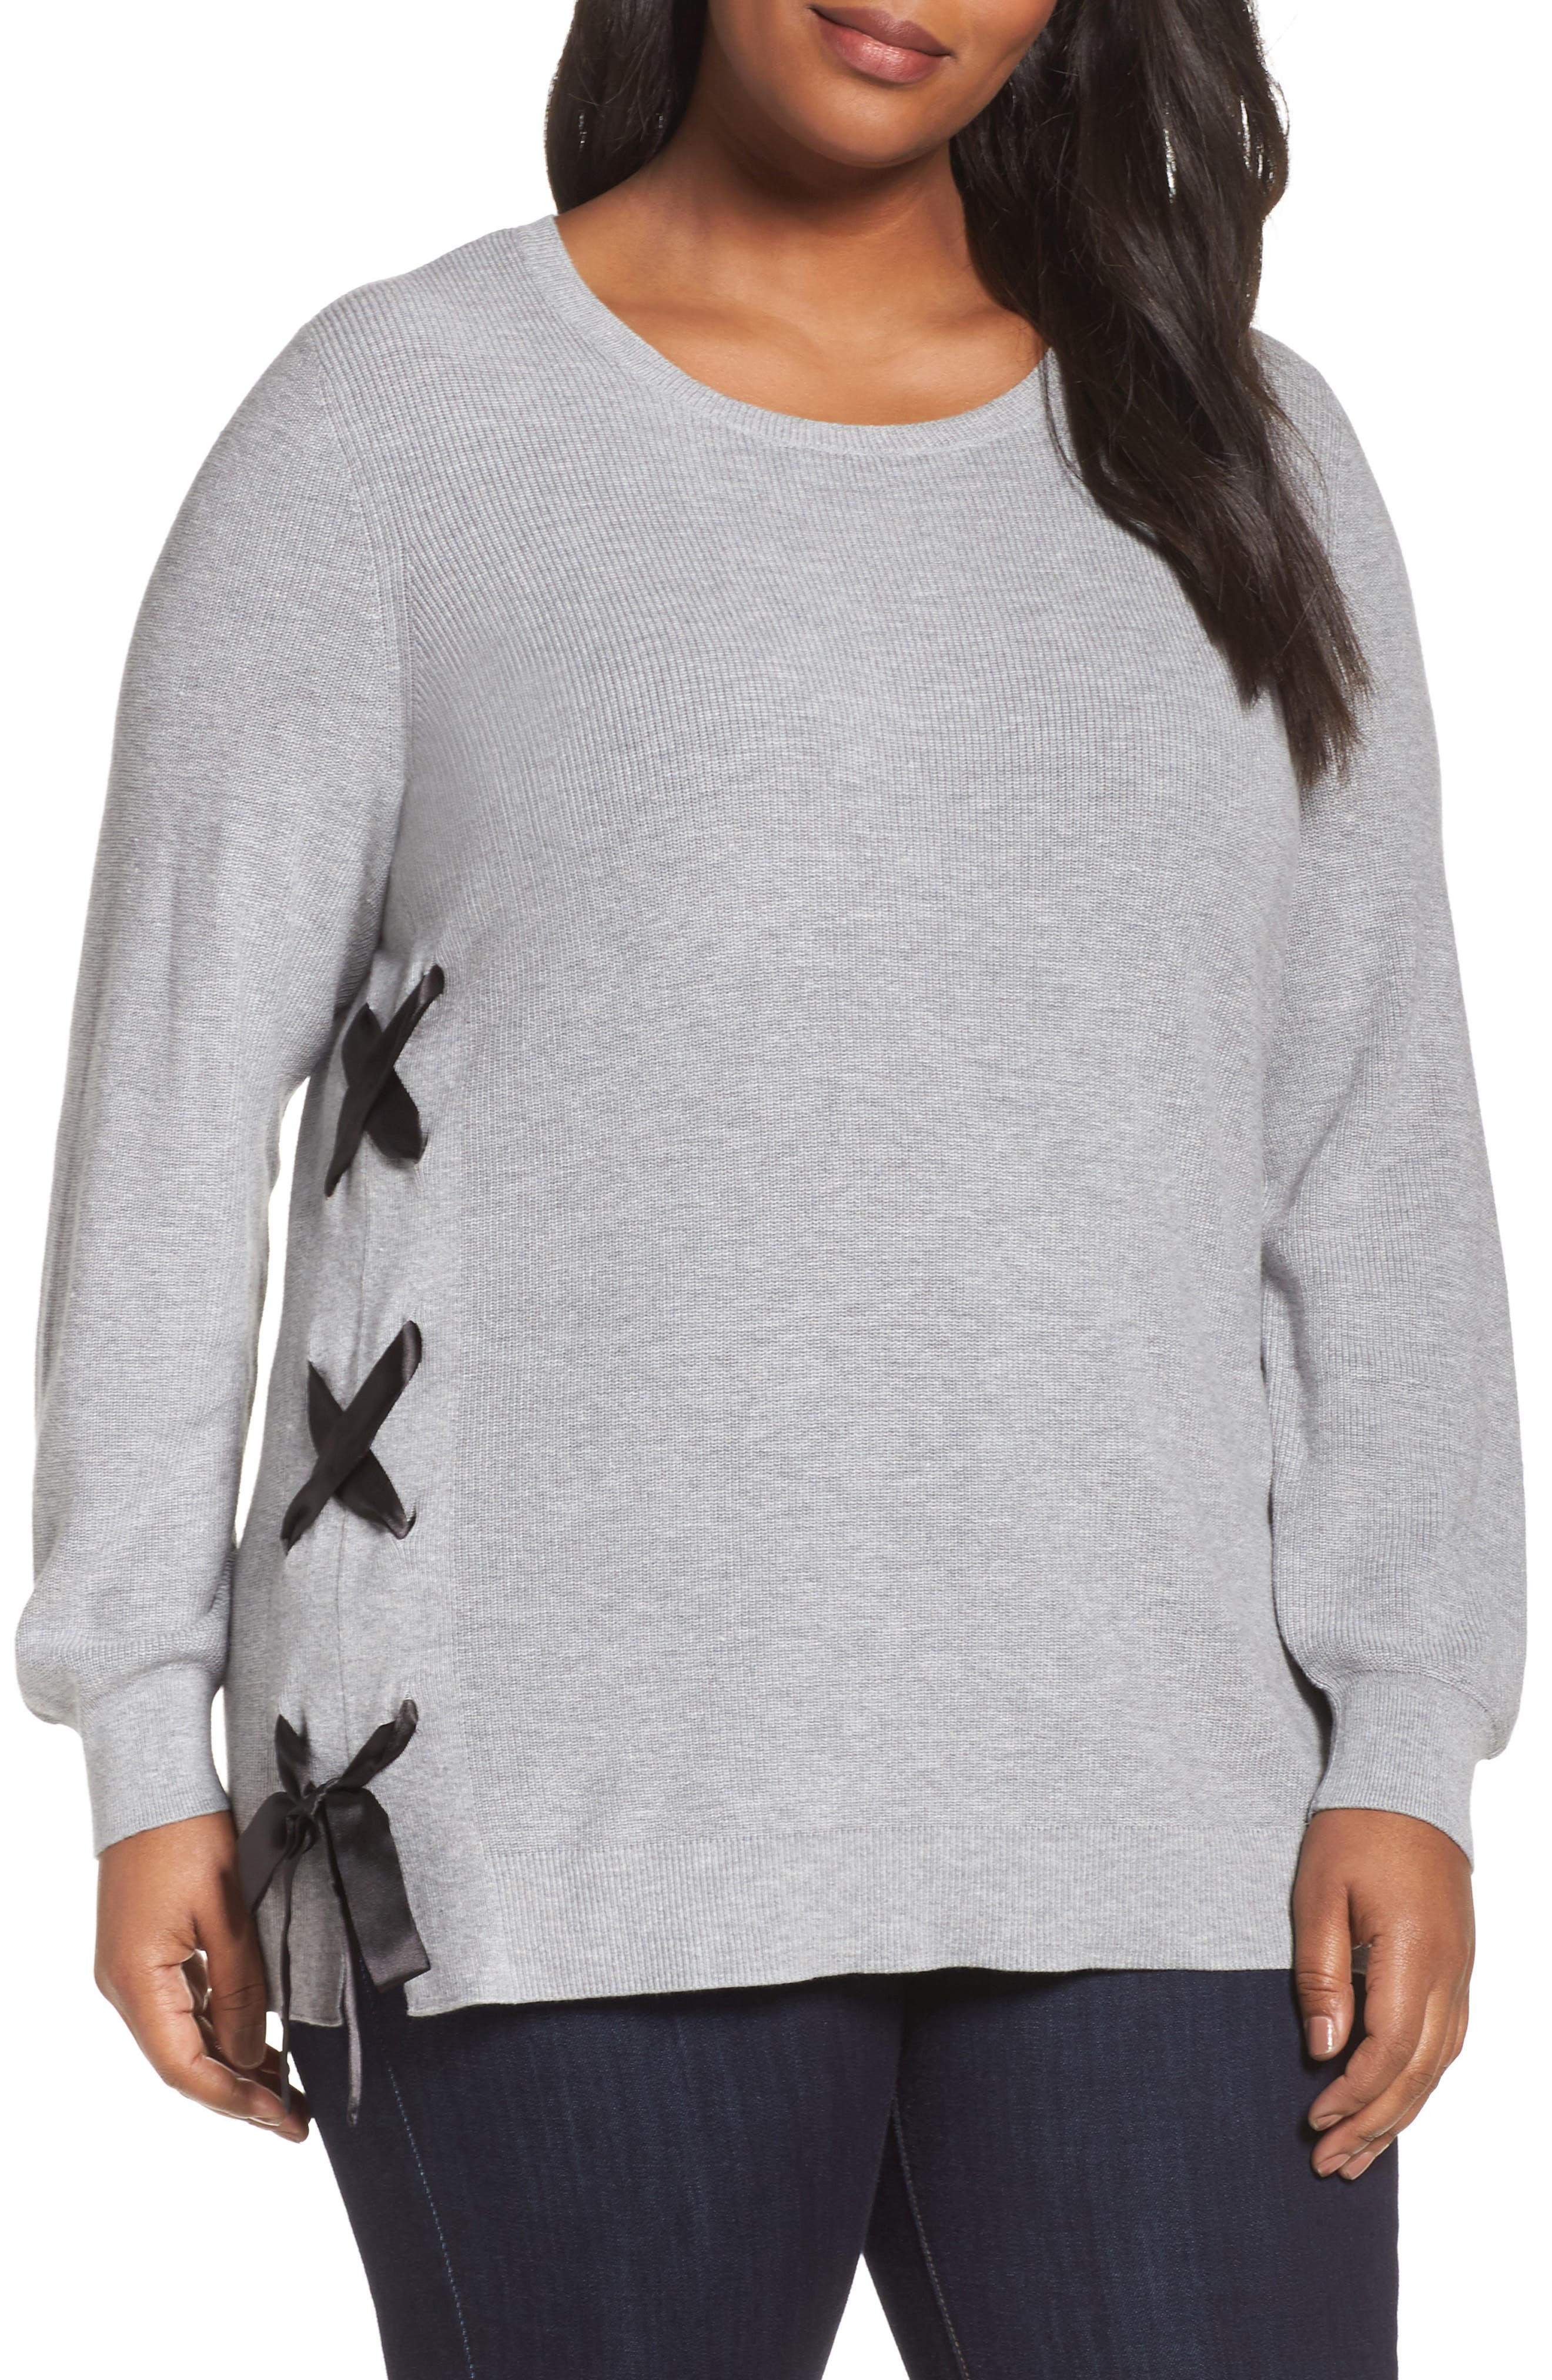 Alternate Image 1 Selected - Sejour Lace-Up Pullover (Plus Size)